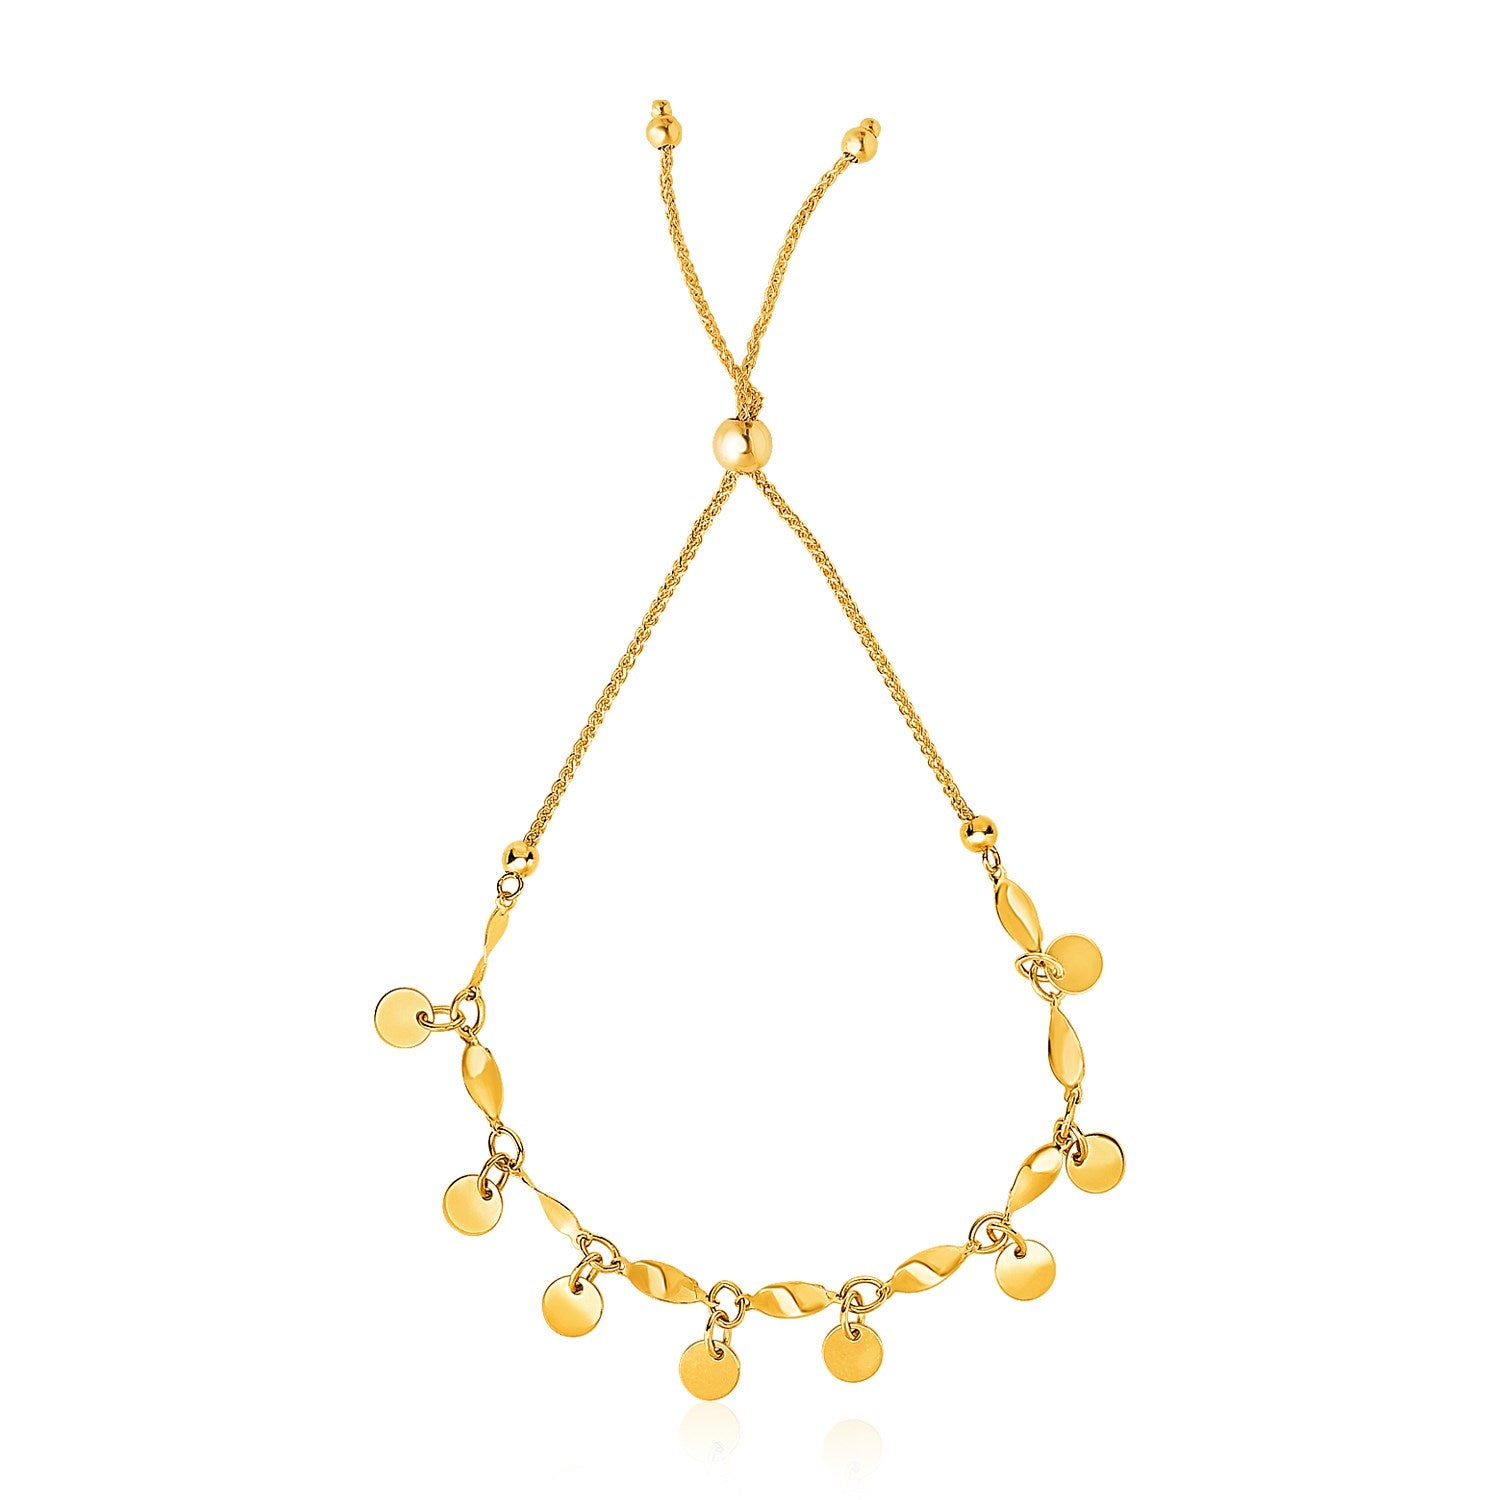 14K Yellow Gold Lariat Bracelet with Shiny Flat Disc Stations